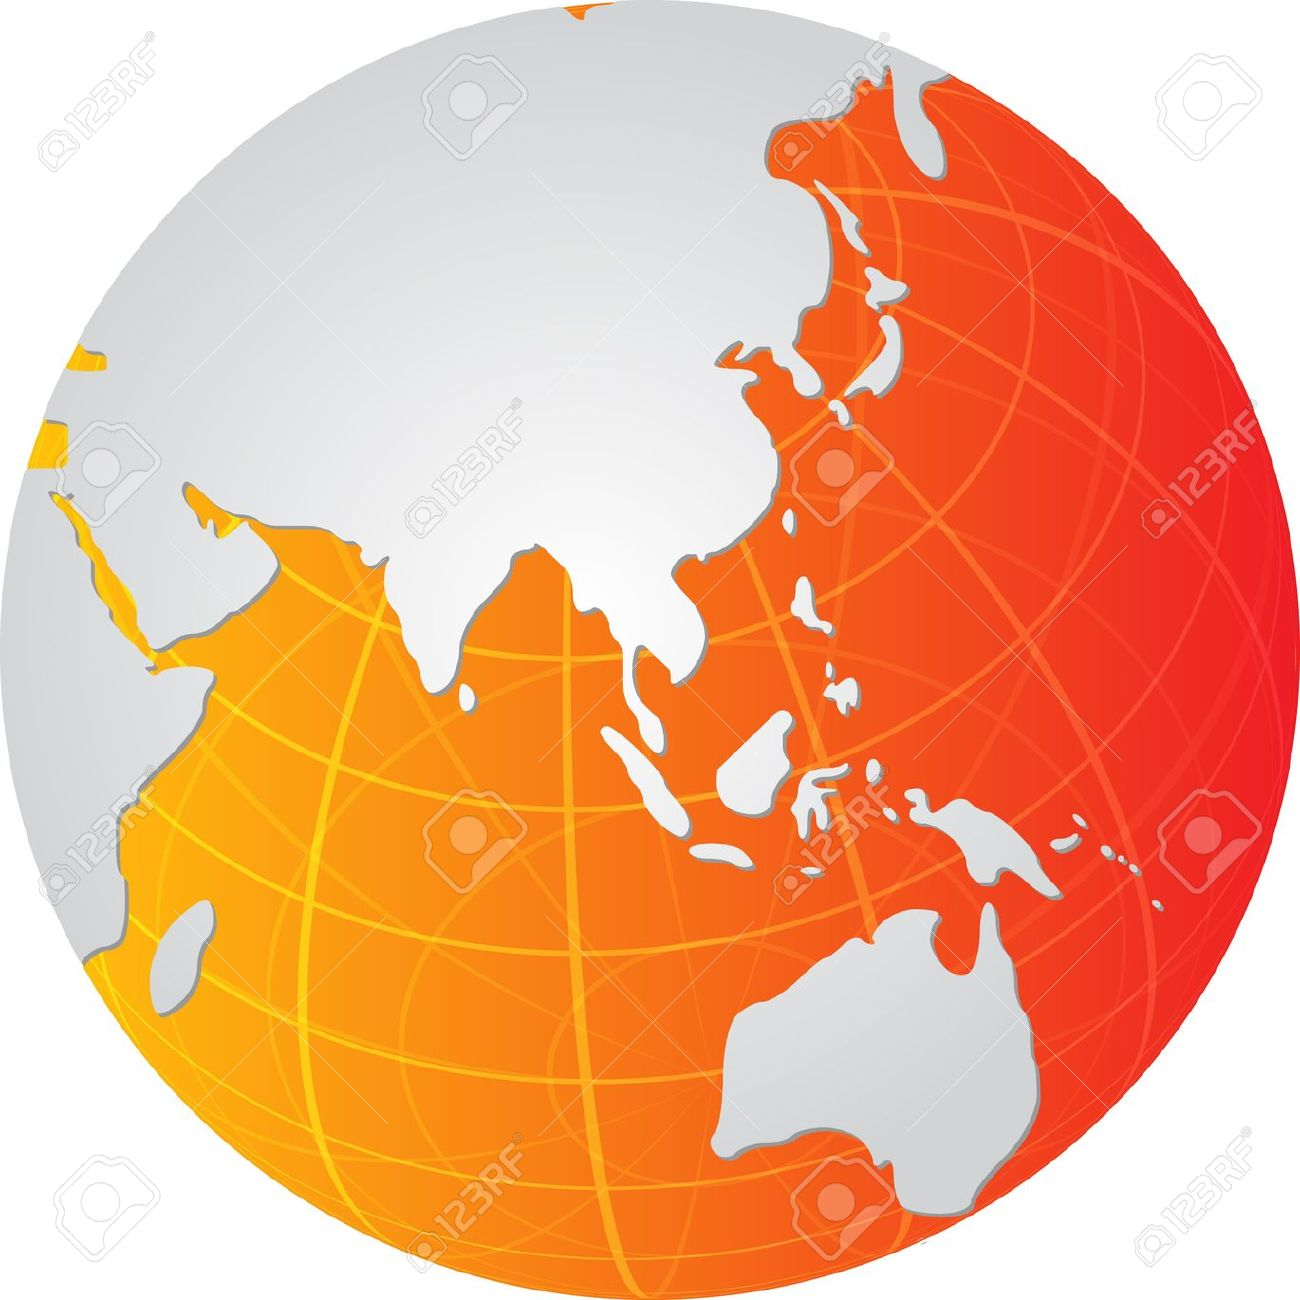 Asia pacific clipart image free Globe Map Illustration Of The Asia Pacific Stock Photo, Picture ... image free